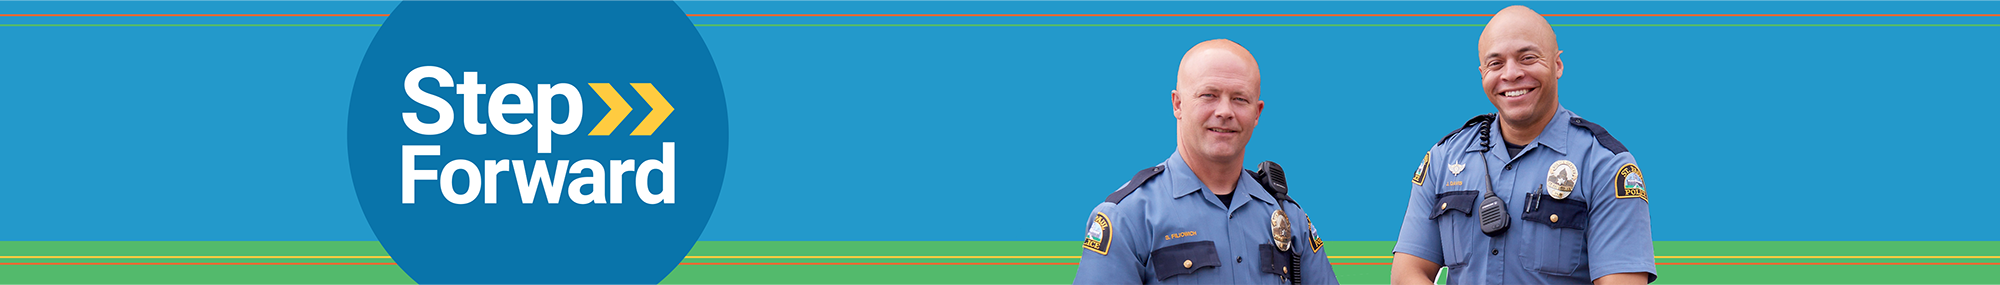 entry officer police banner